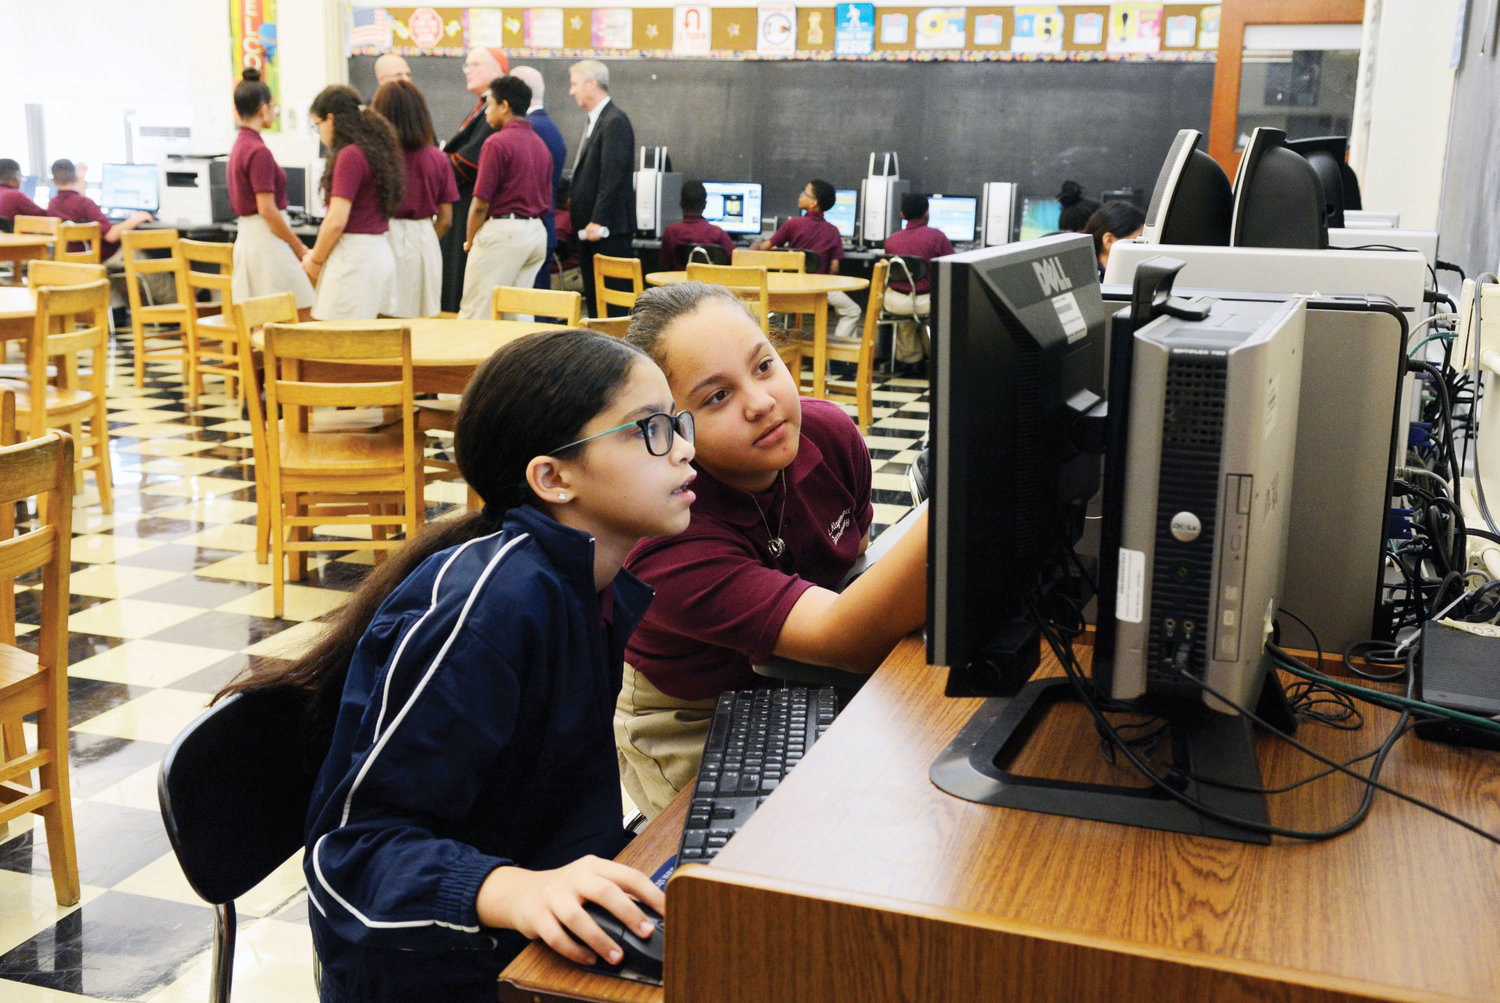 Sixth-graders Laisha Taveras and Adriana Acevedo, left to right, concentrate on a computer lesson.